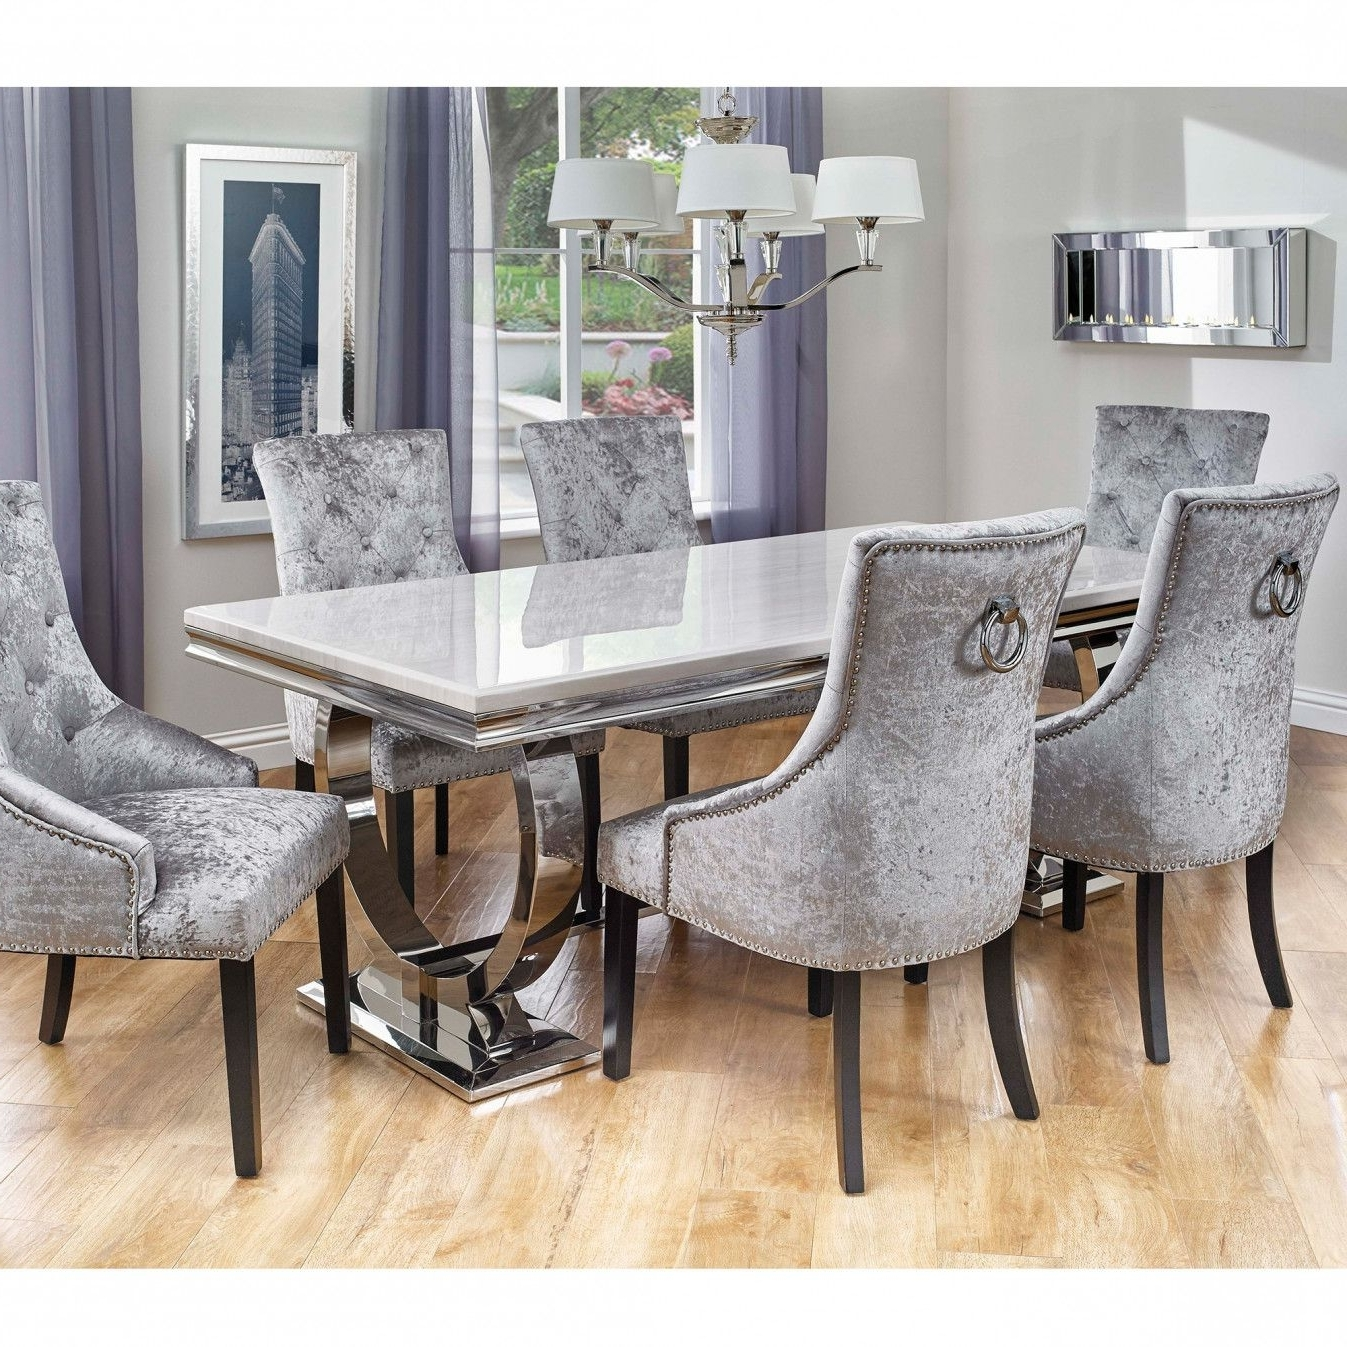 Pinterest Regarding Famous 6 Chair Dining Table Sets (Gallery 9 of 25)